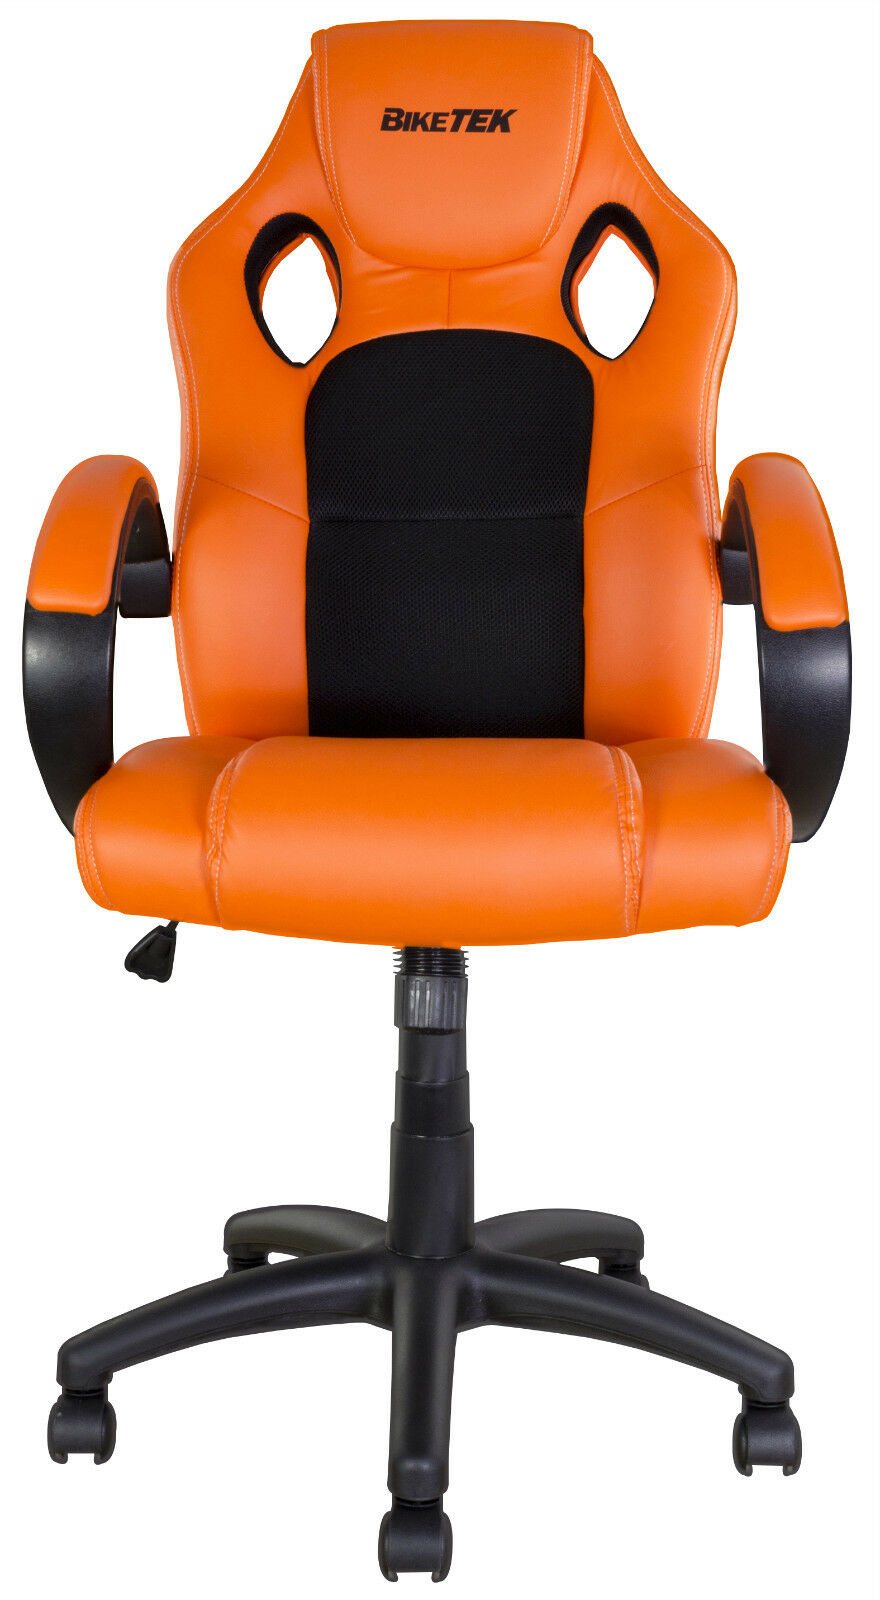 Orange Office Chairs Biketek Ktm Orange Office Garage Motocross Mx Enduro Race Team Rider Chair